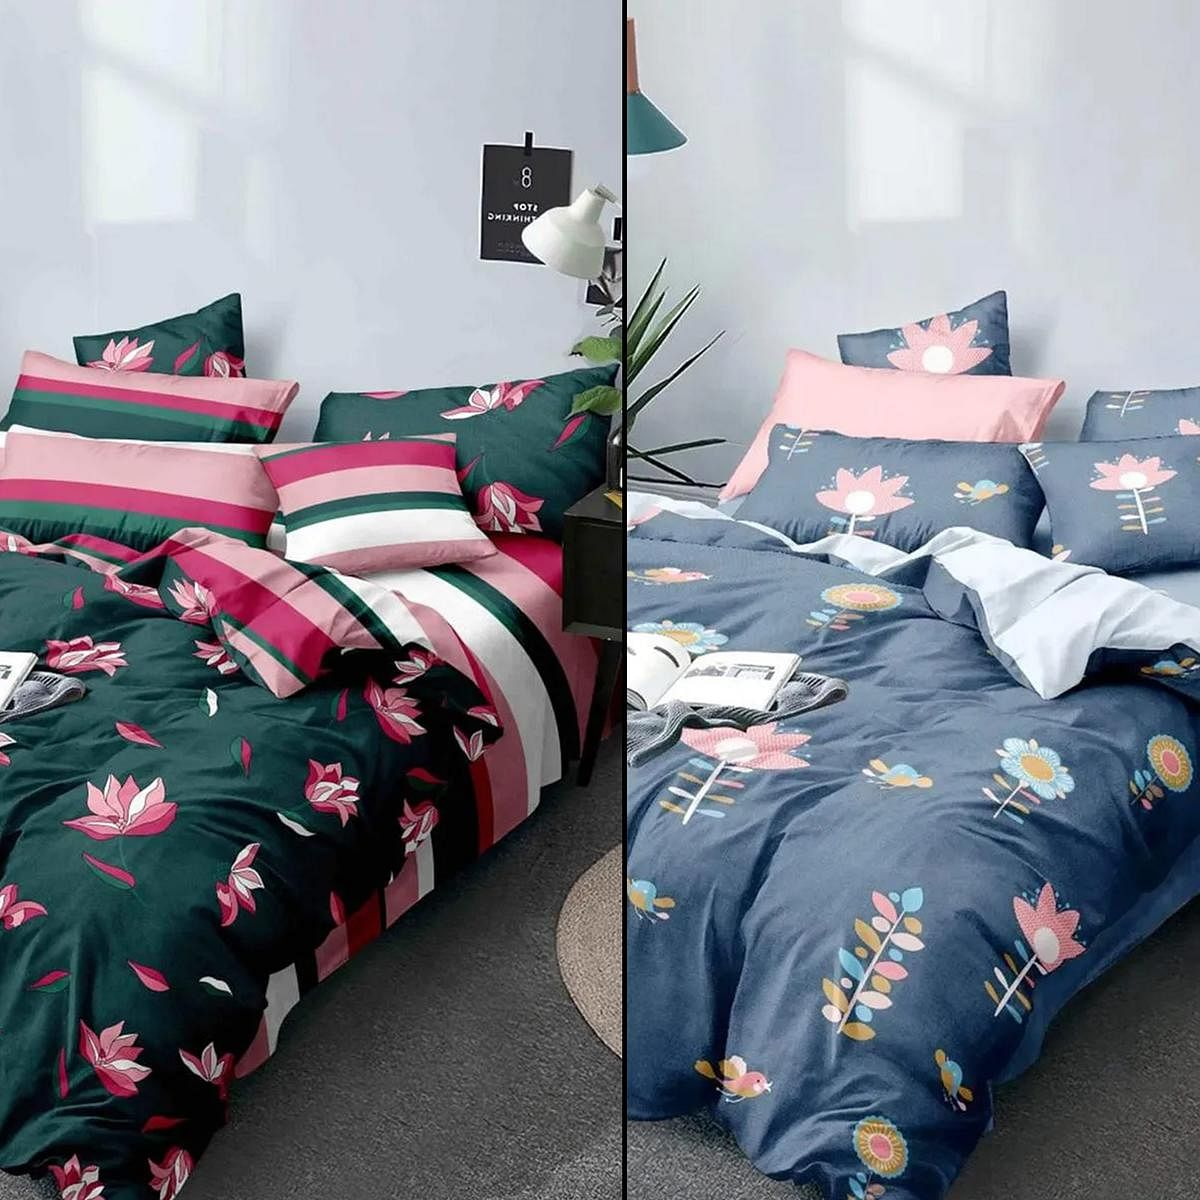 Elegant Printed Bed Sheets With 2 Pillow Covers - Pack of 2